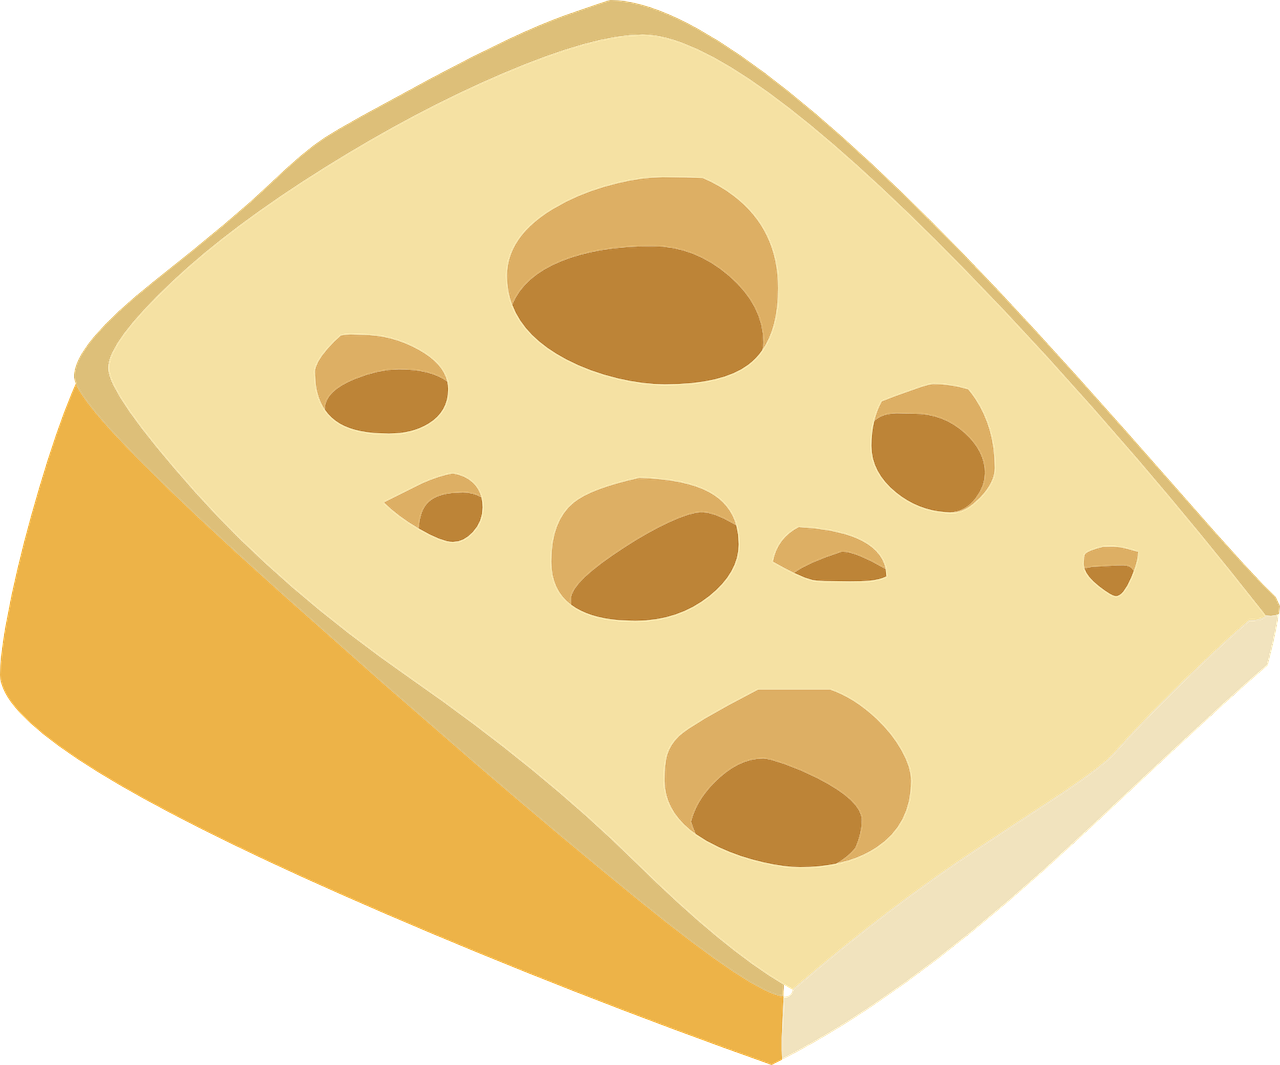 The swiss cheese accident causation model can help you understand and prevent future accidents